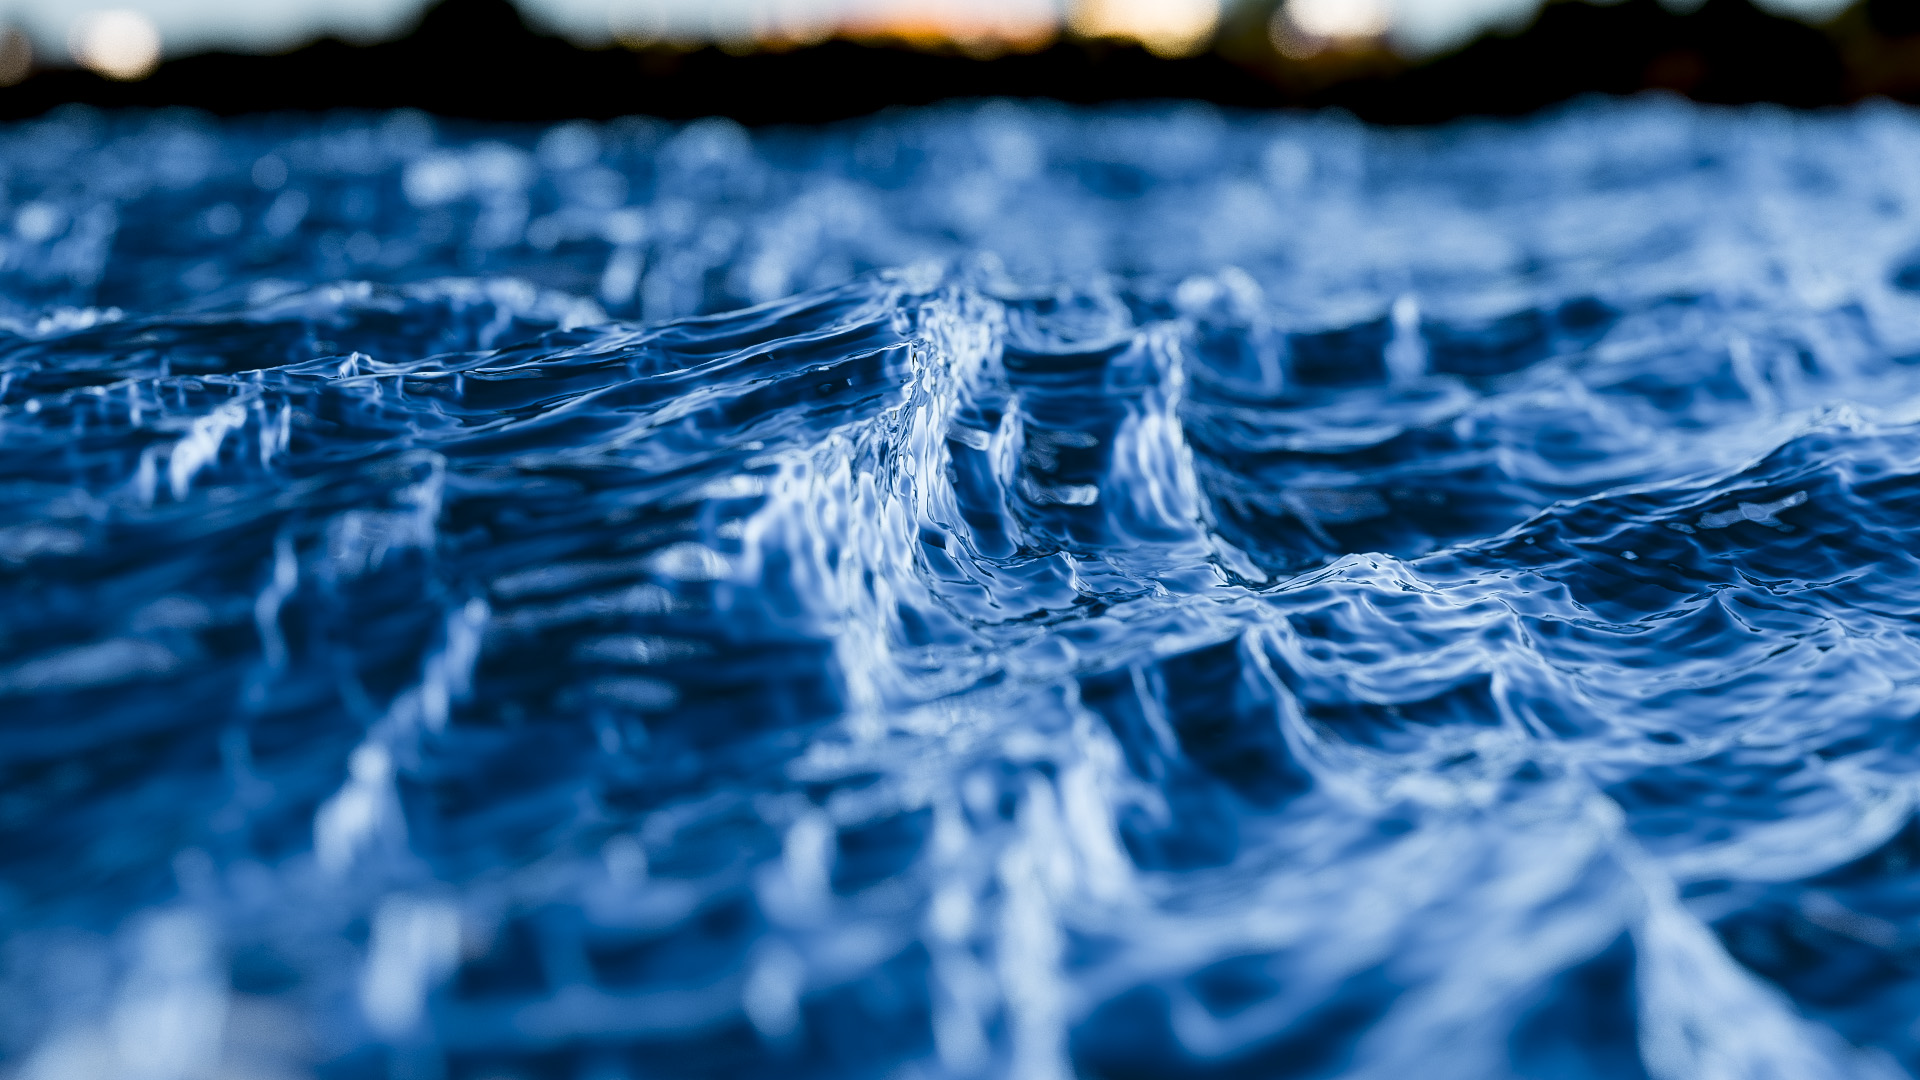 Figure 3: Another view of the vector displaced ocean surface from Figure 1. The ocean surface has a dielectric refractive material complete with colored attenuated transmission. A shallow depth of field is used to lend added realism.